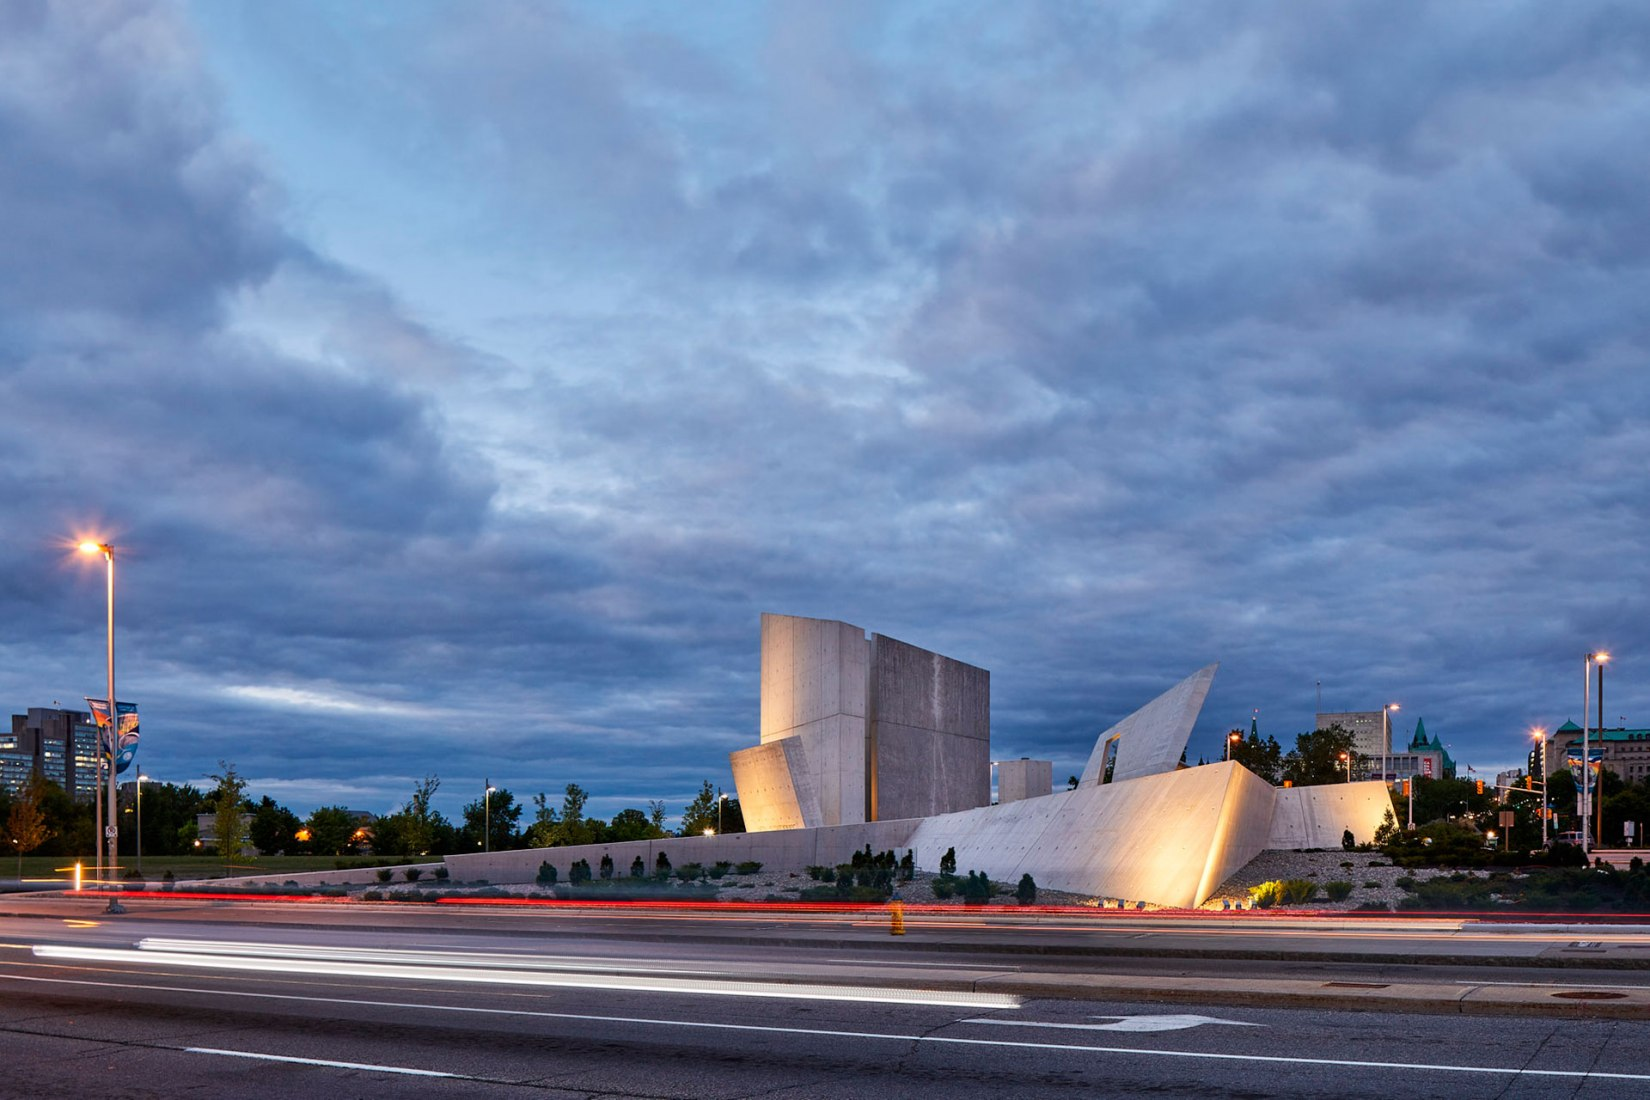 Canadian National Holocaust Monument by Studio Libeskind. Photograph © Doublespace. Courtesy of Studio Libeskind